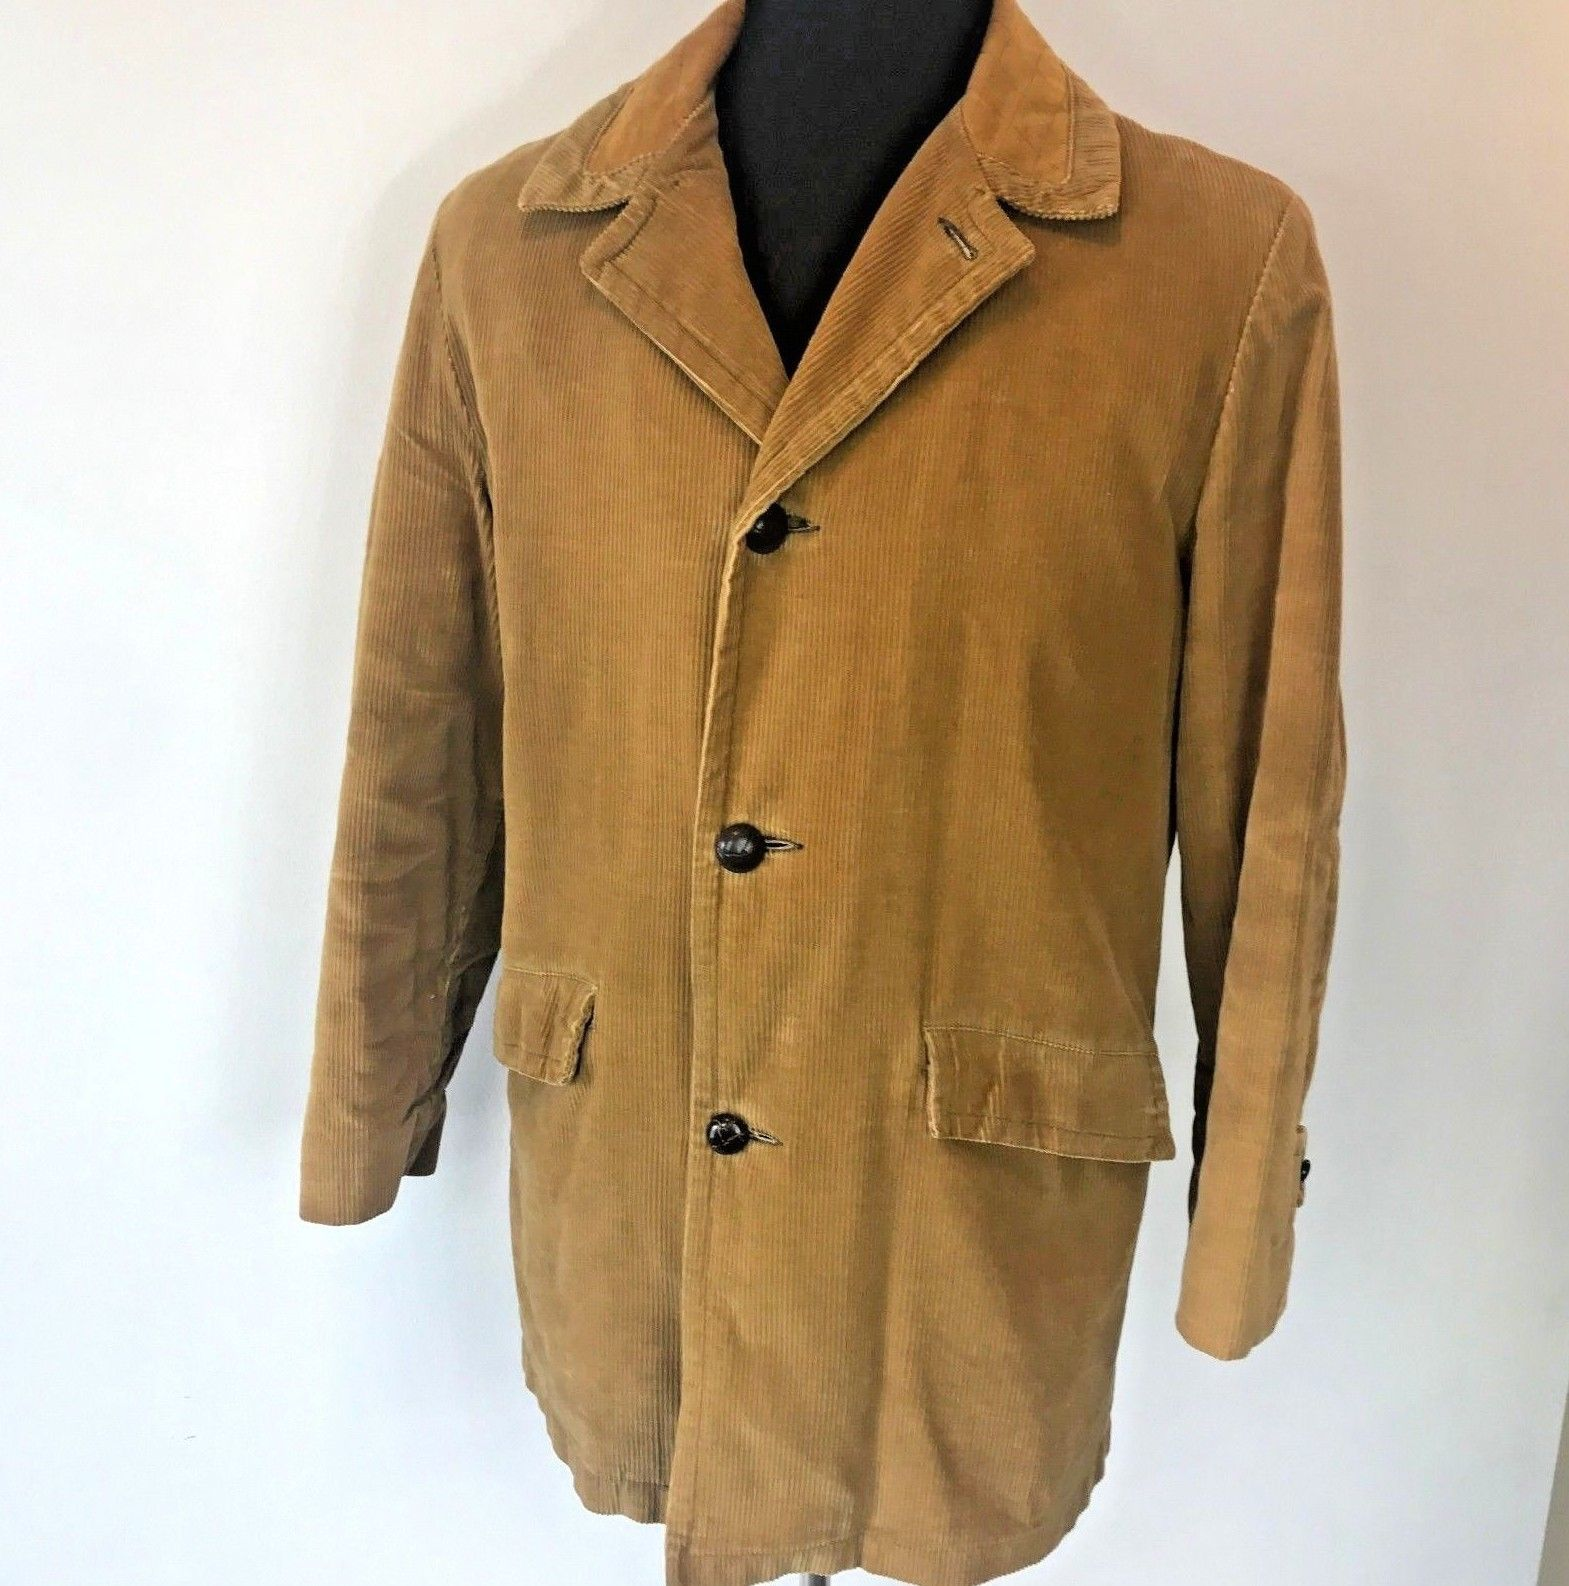 95bf79b63d934 Vintage 1960s 70s JCPenney Towncraft Tan and similar items. 57